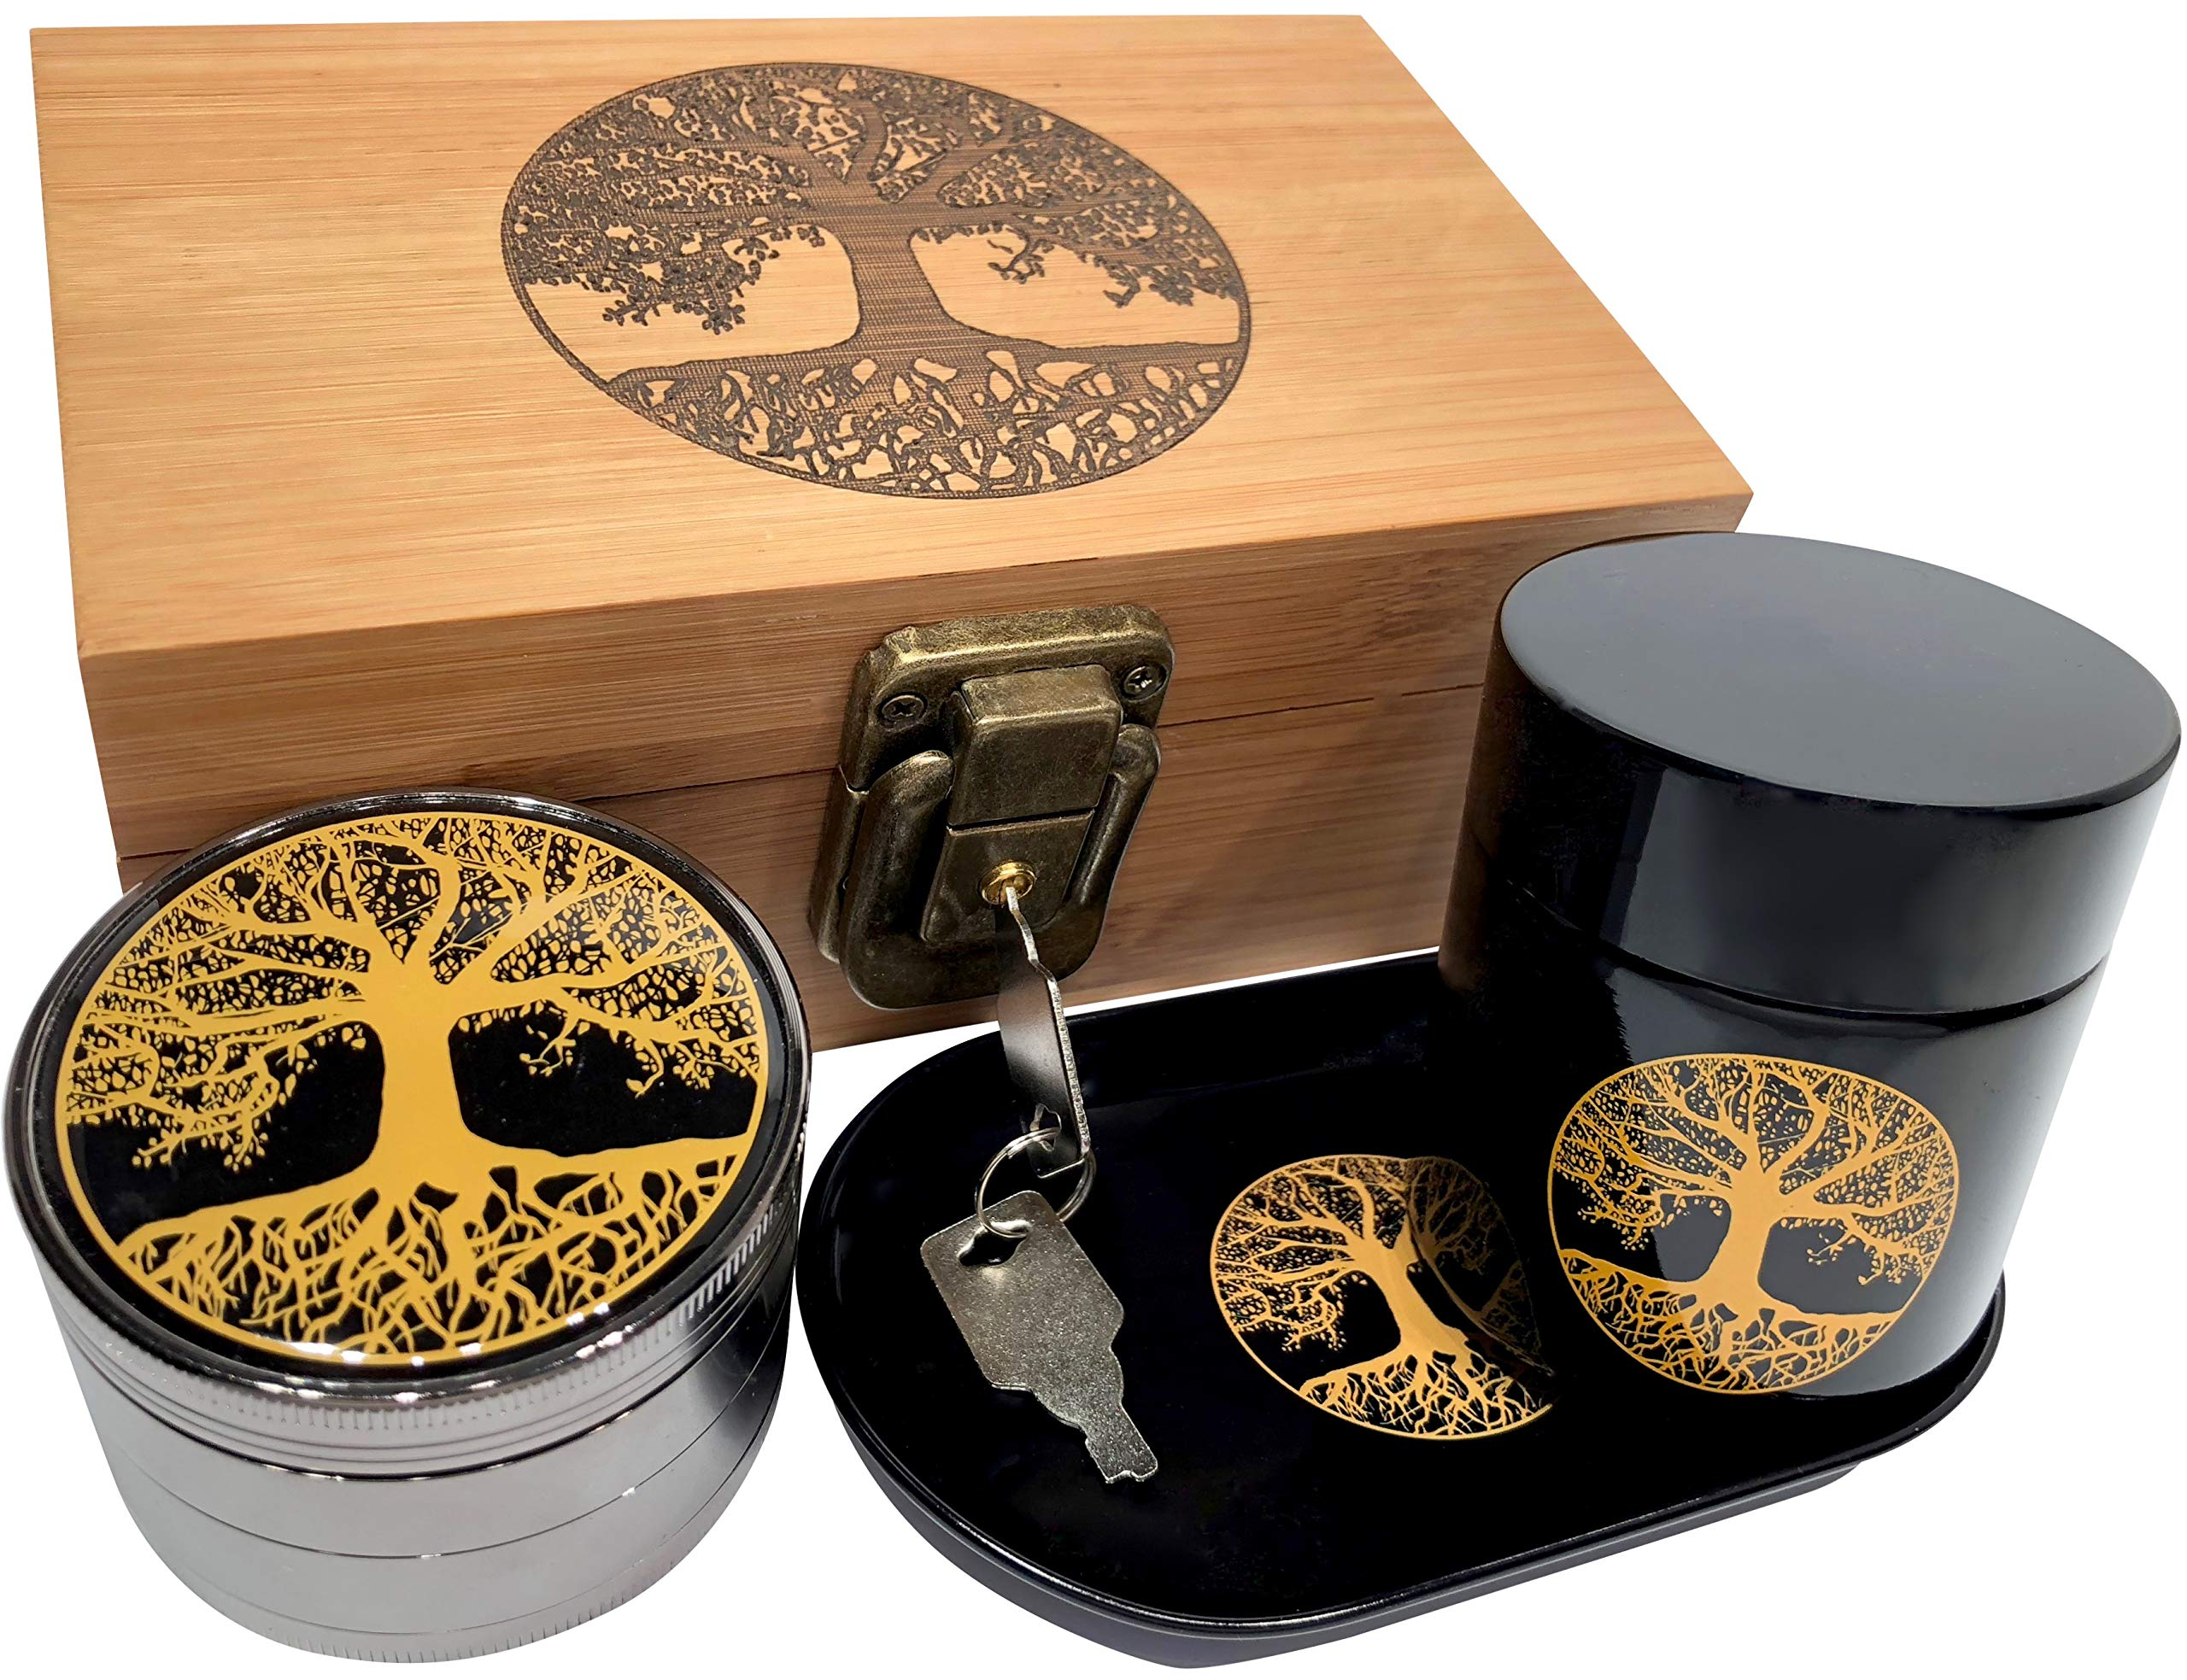 Tree of Life Stash Box Combo - Full Size Titanium 4 Part Herb Grinder - UV Glass stash jar - Engraved Wood Stash Box - Smell Proof and Airtight (Tree of Life) by Swagstr Grinders